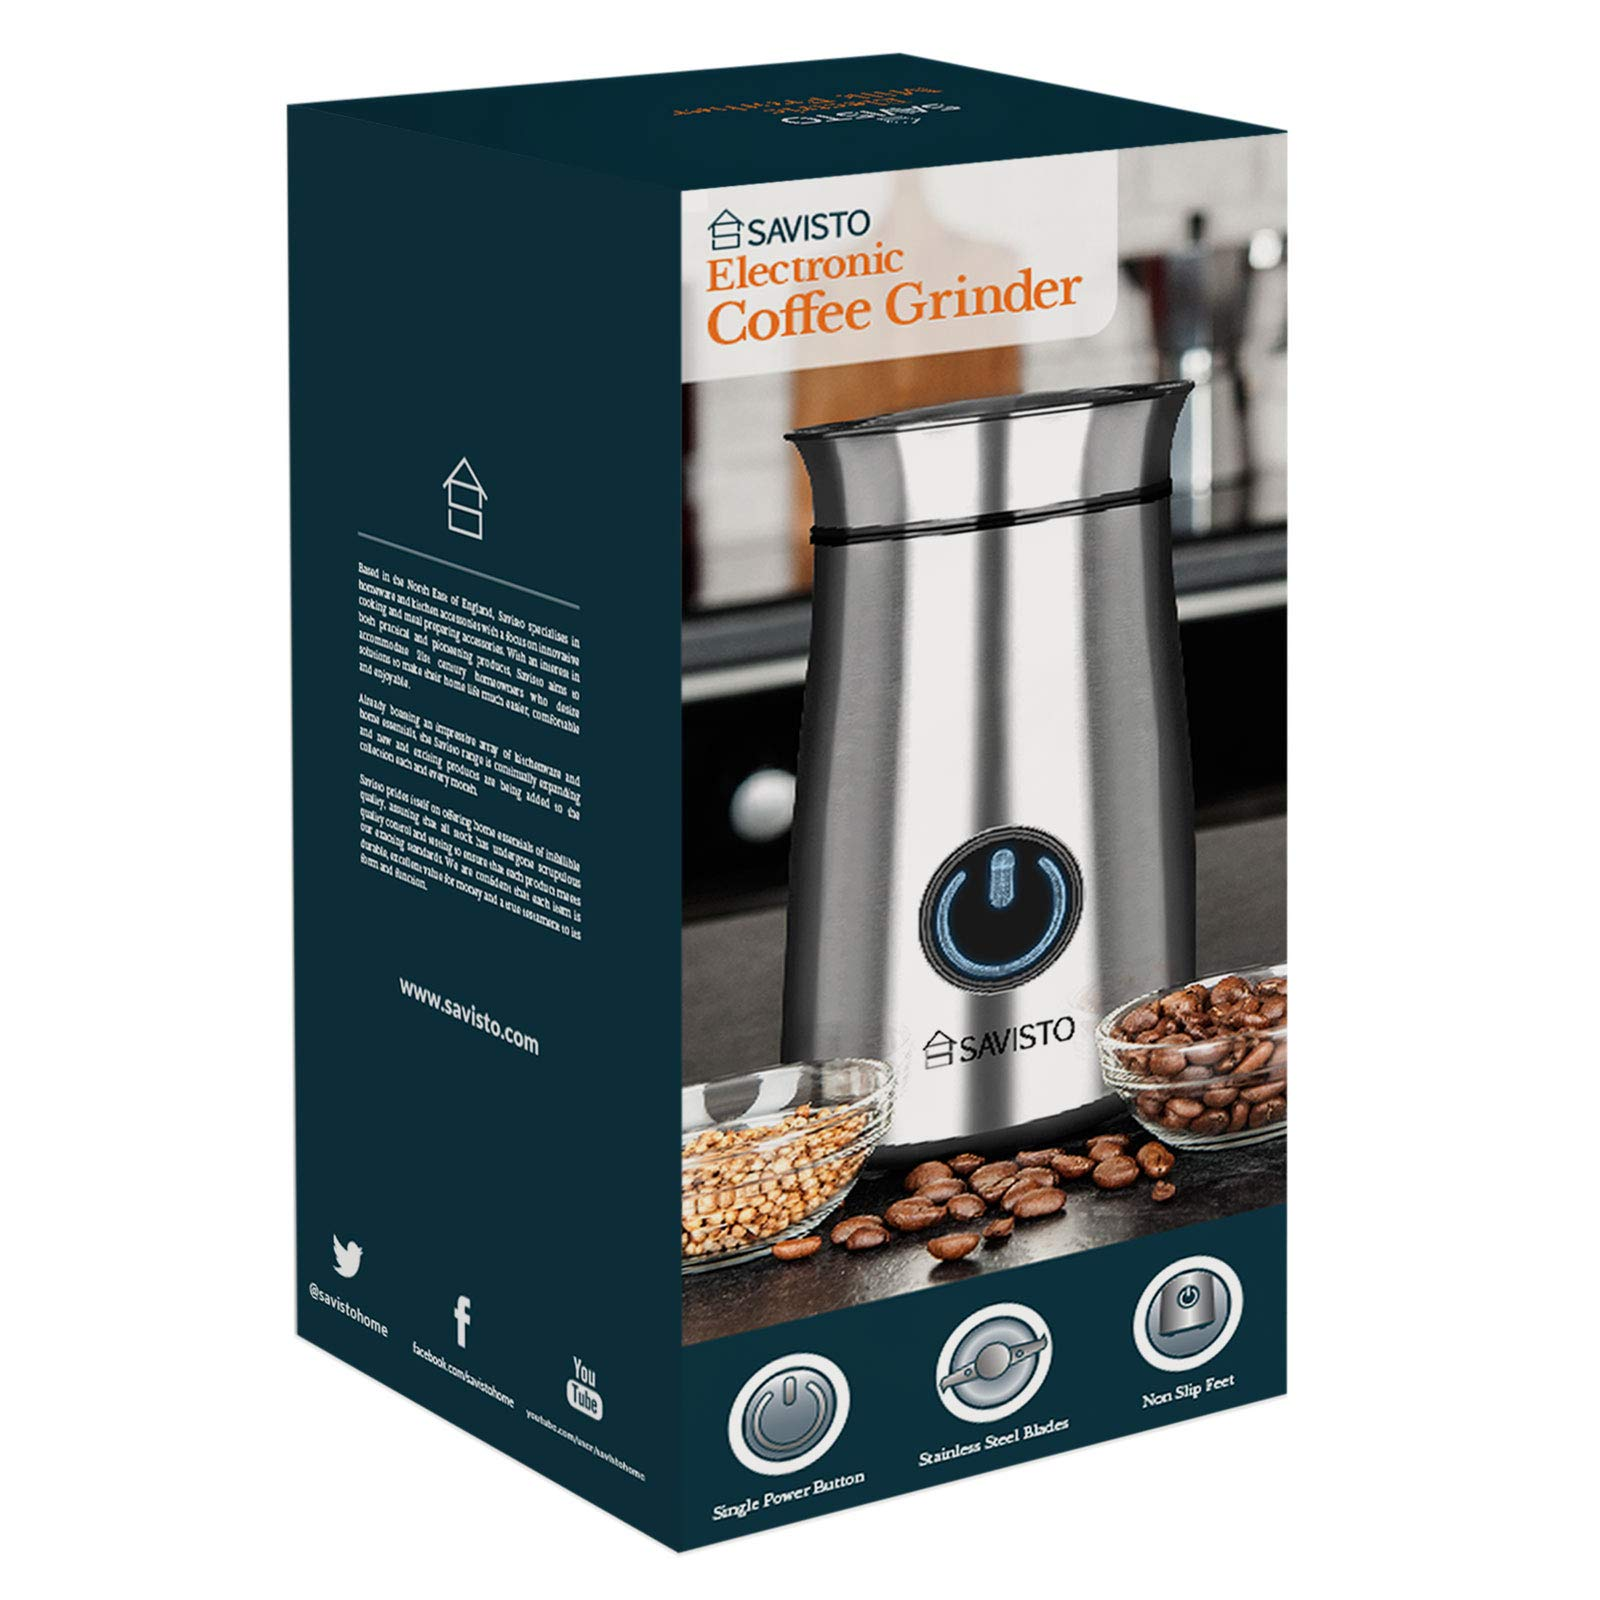 Savisto-150W-High-Powered-Coffee-Grinder-Professional-Multi-Use-Coffee-Bean-Spice-Nut-Grinder-with-Dual-Steel-Blades-70g-Capacity-Brushed-Stainless-Steel